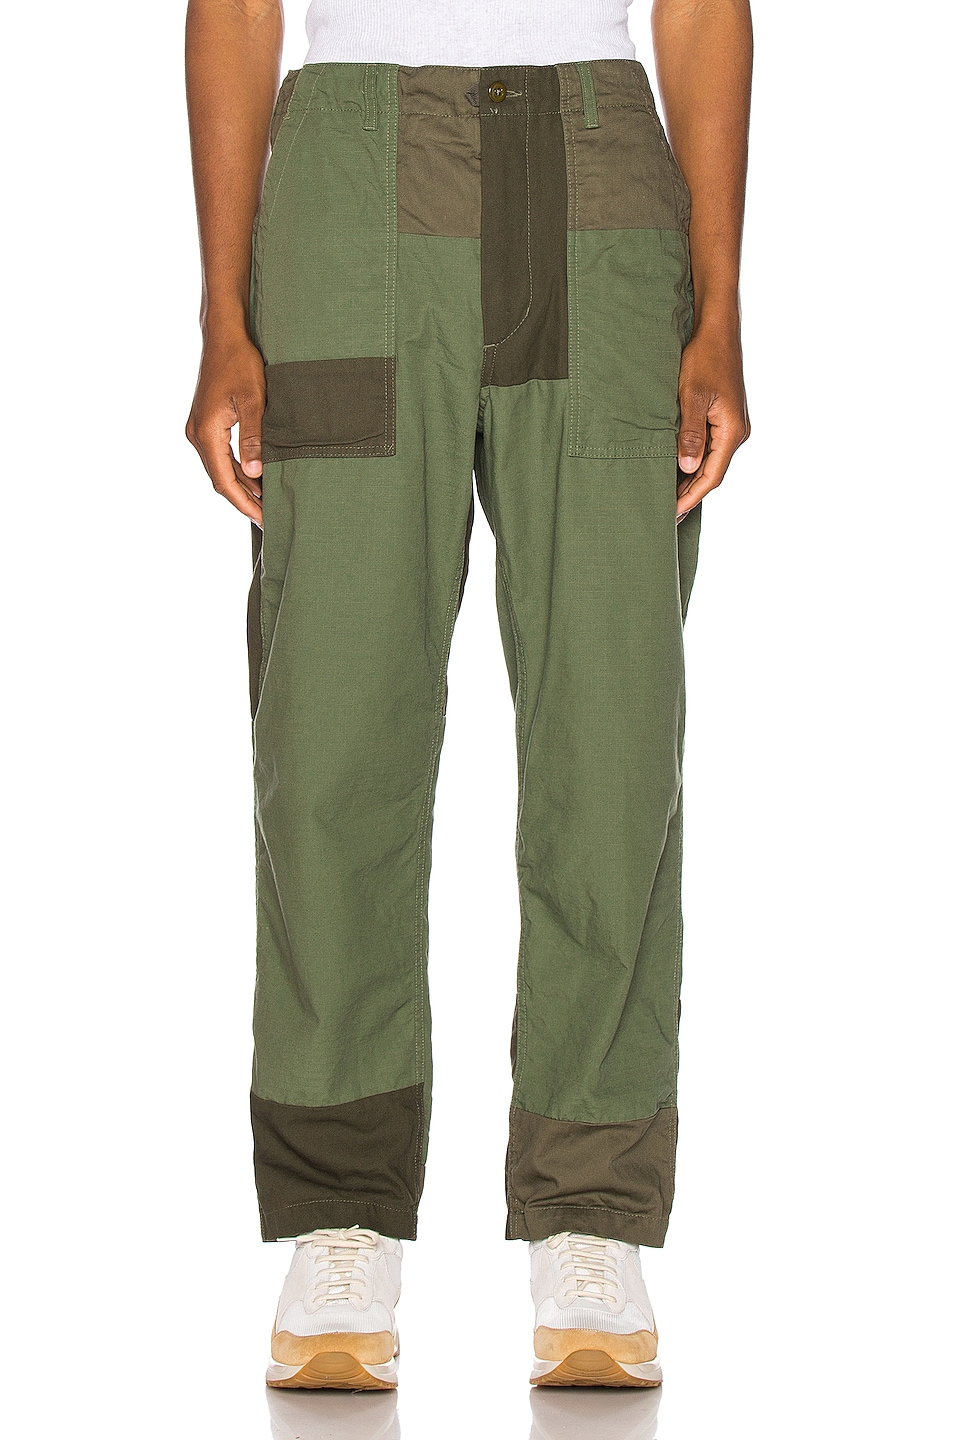 Image 1 of Engineered Garments Fatigue Pant Cotton Ripstop in Olive